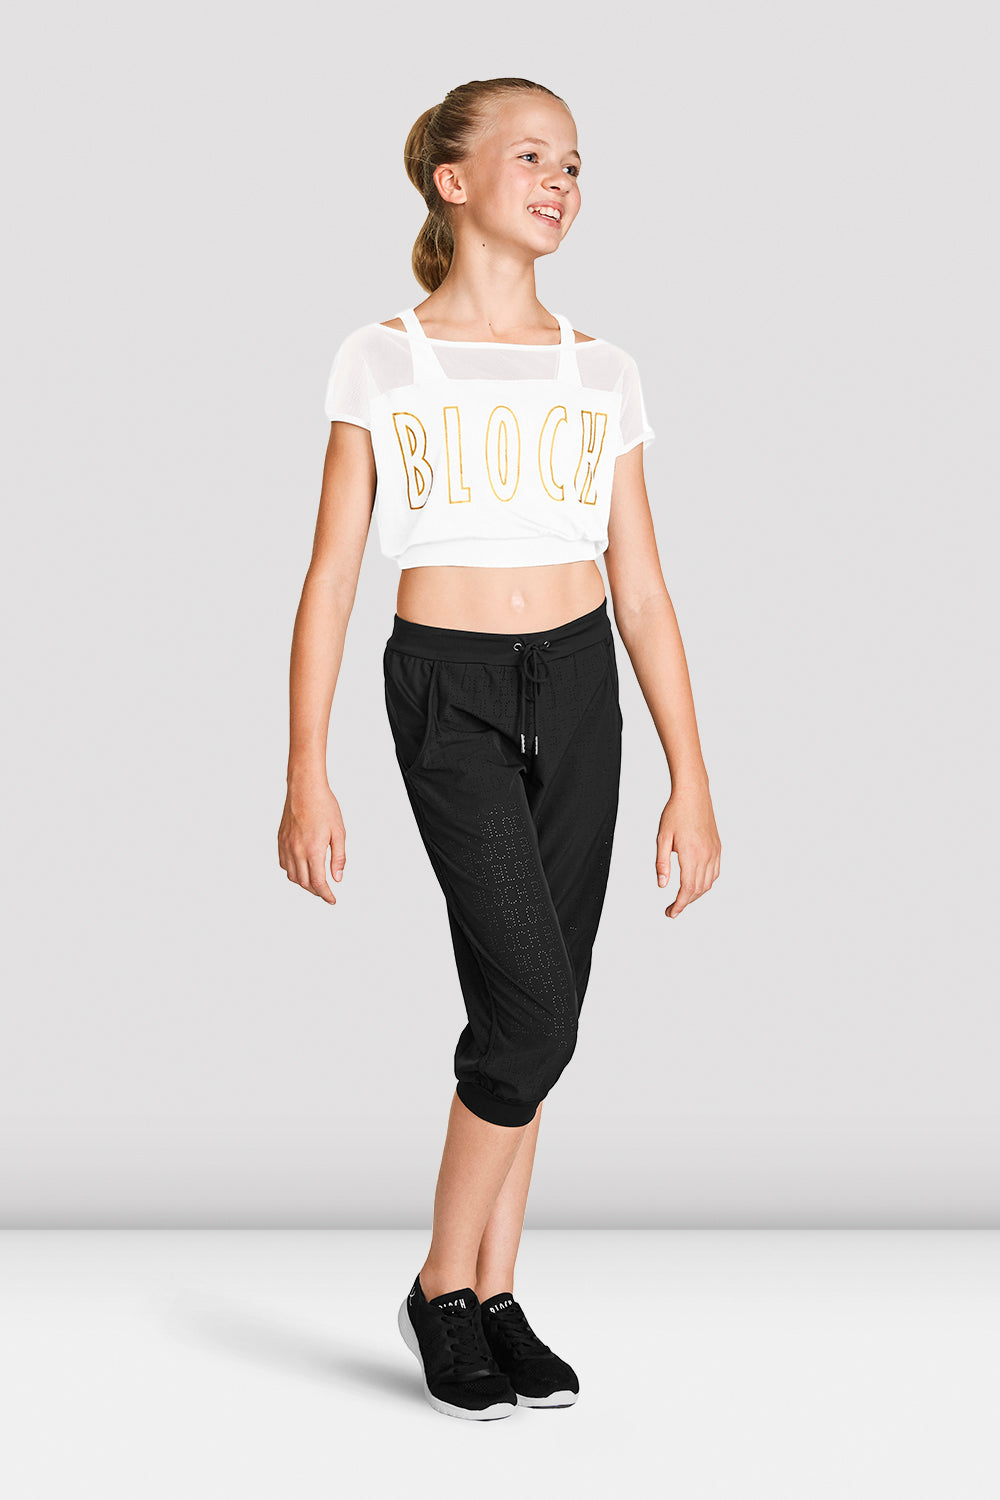 Girls Crop Mesh Tee - BLOCH US